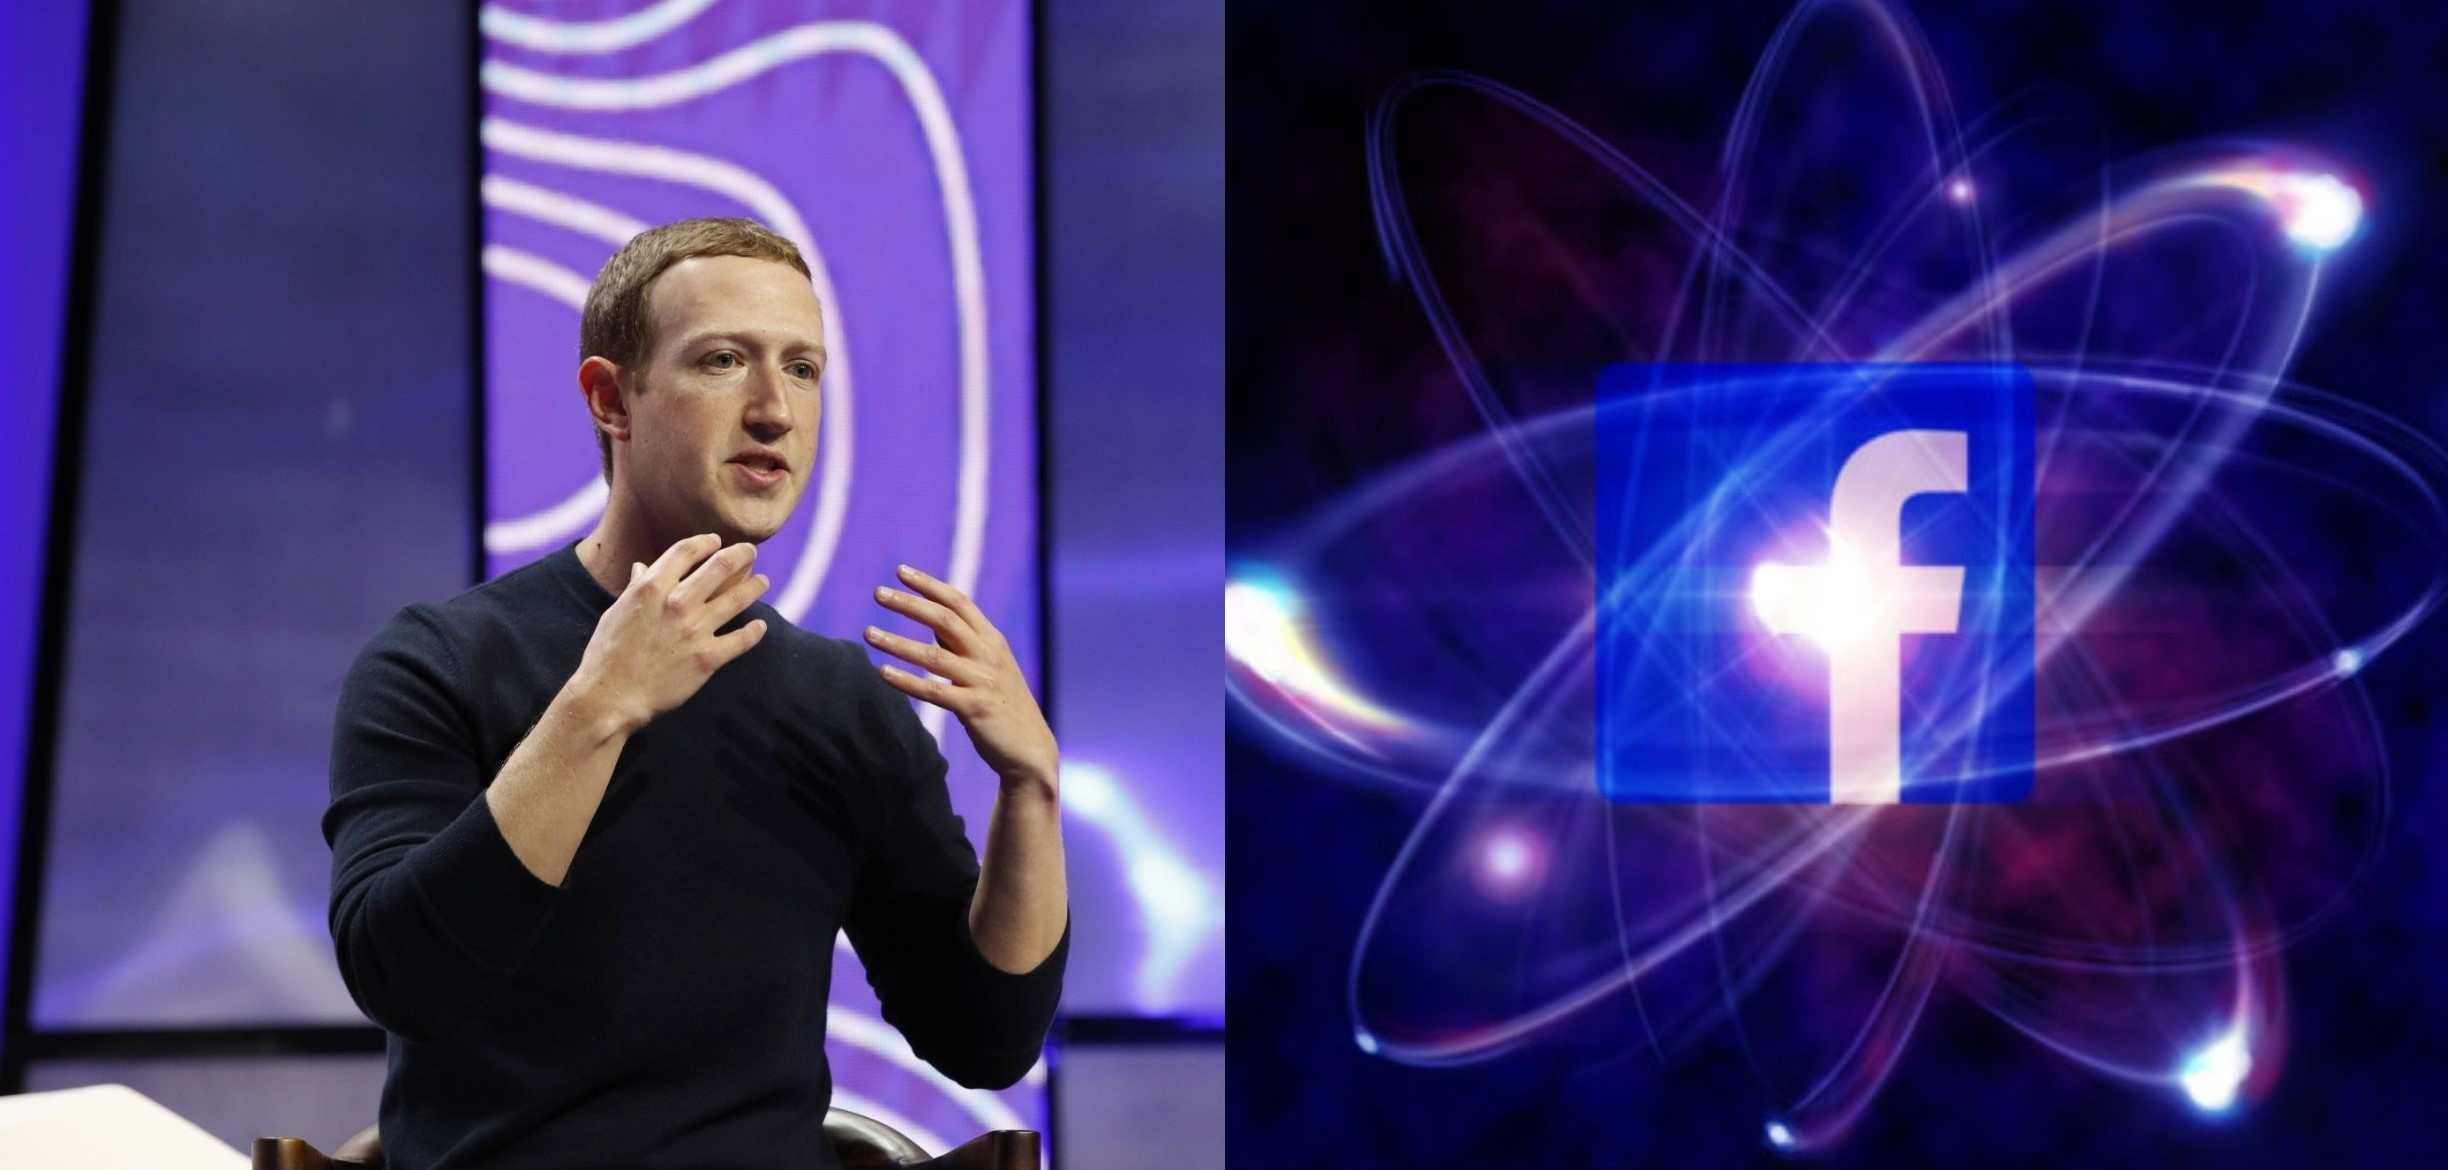 Facebook Plans To Rebrand Themselves With A New Name